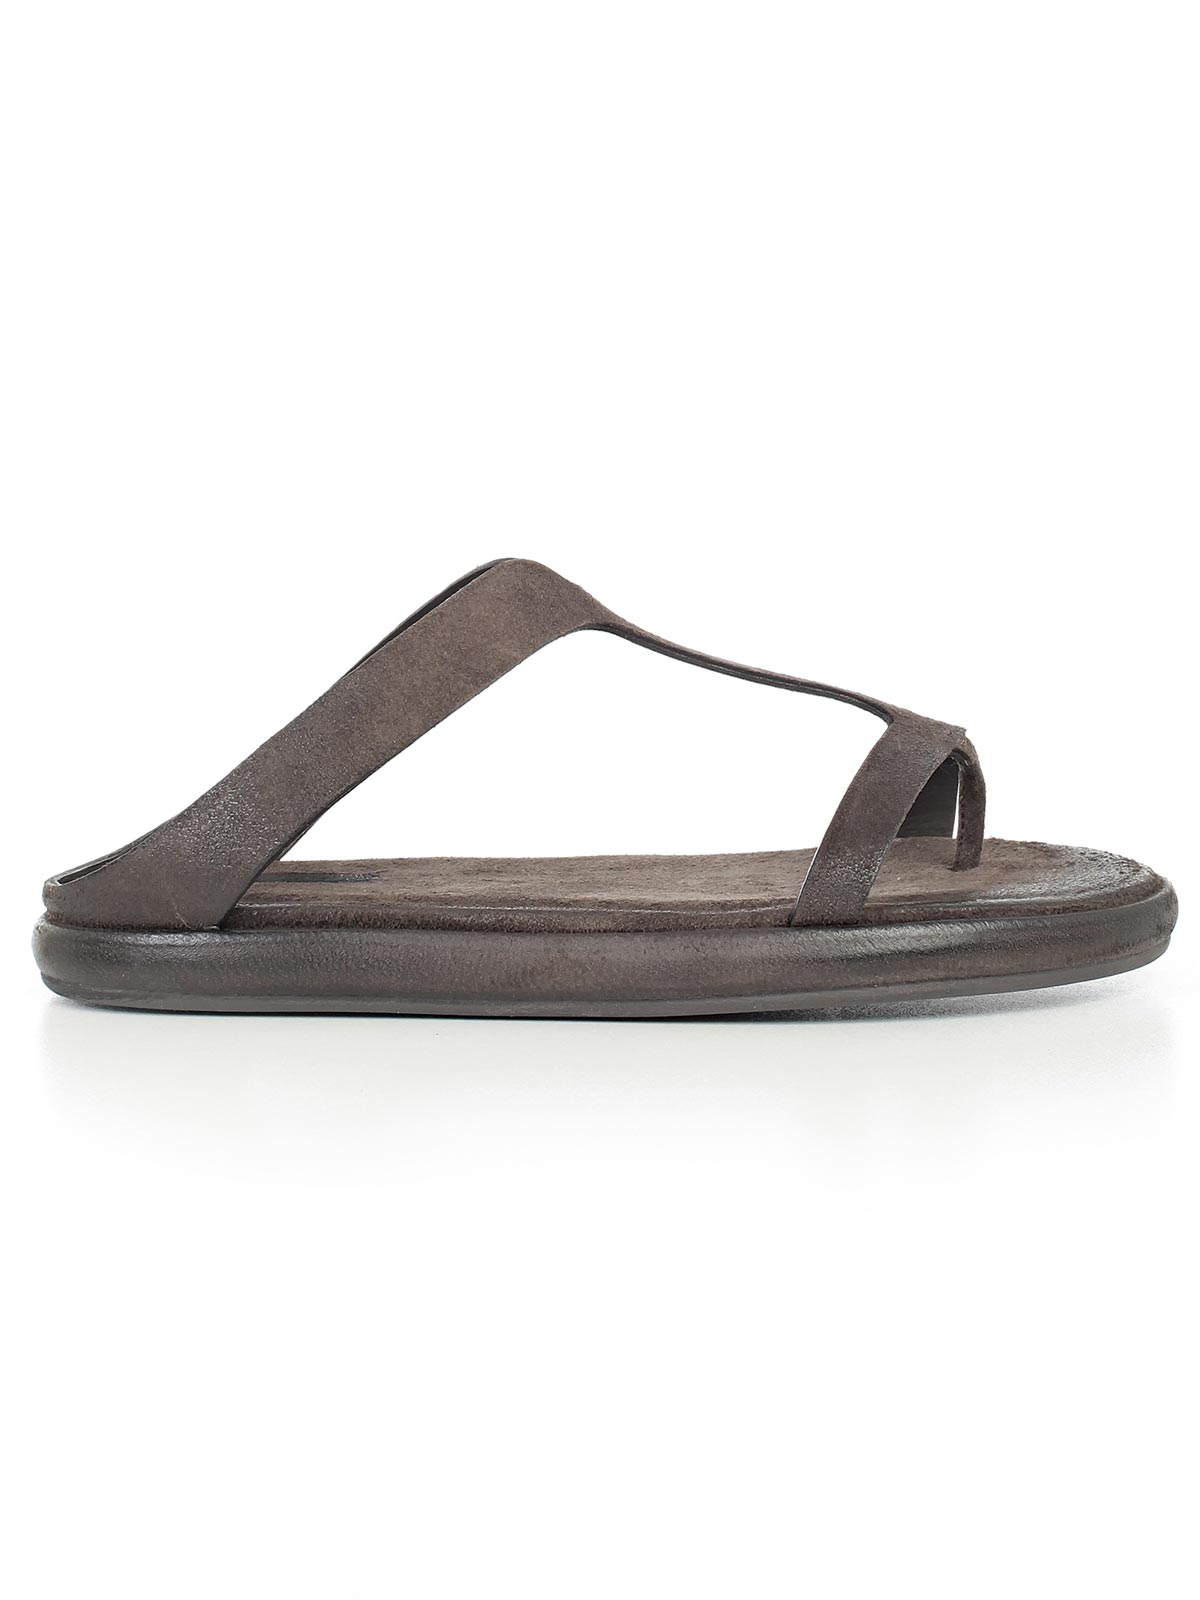 Picture of Marsell Footwear